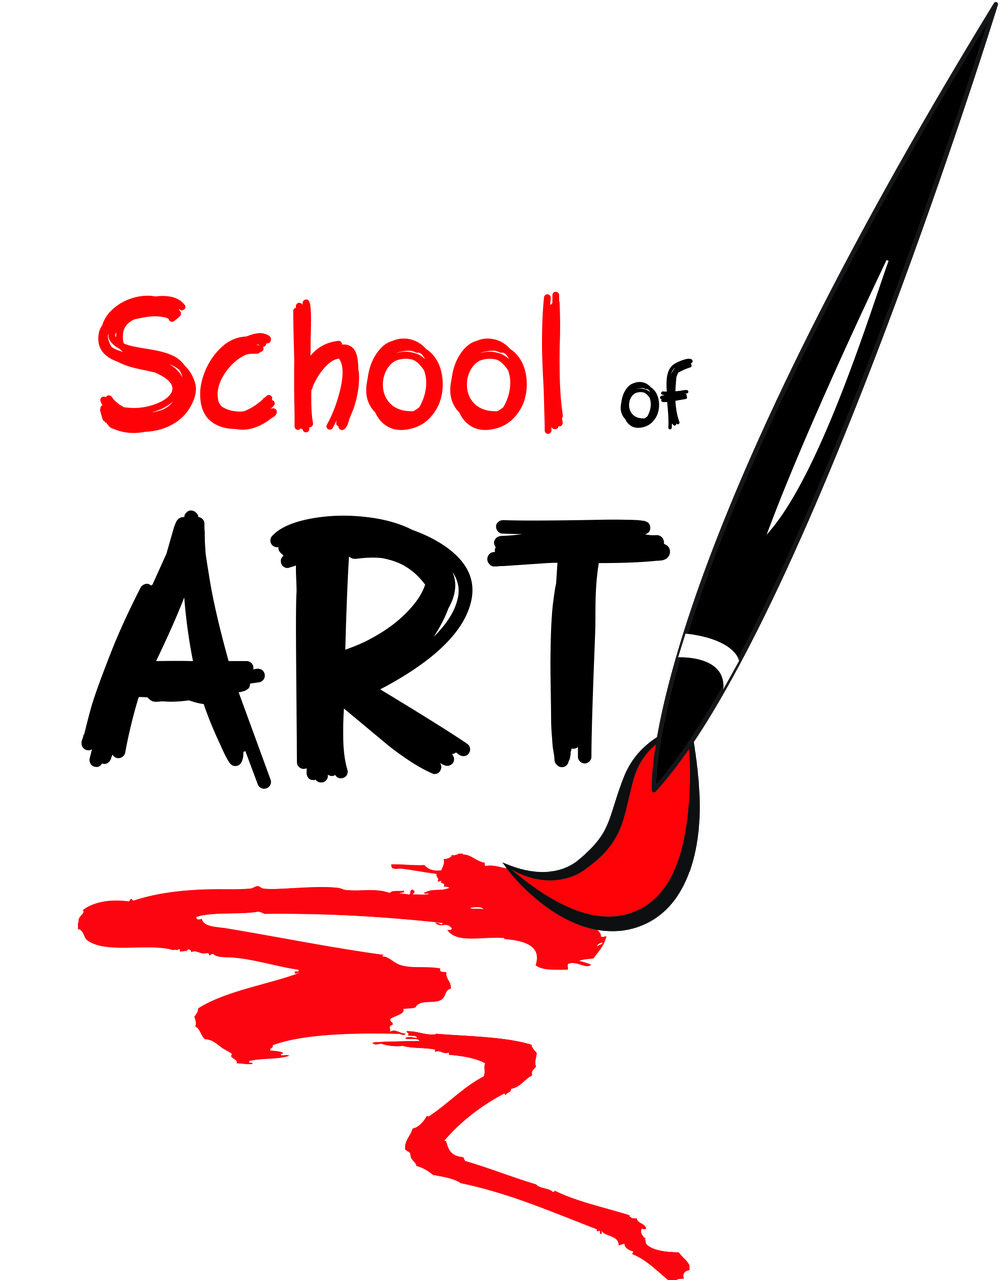 School of ART logo.jpg